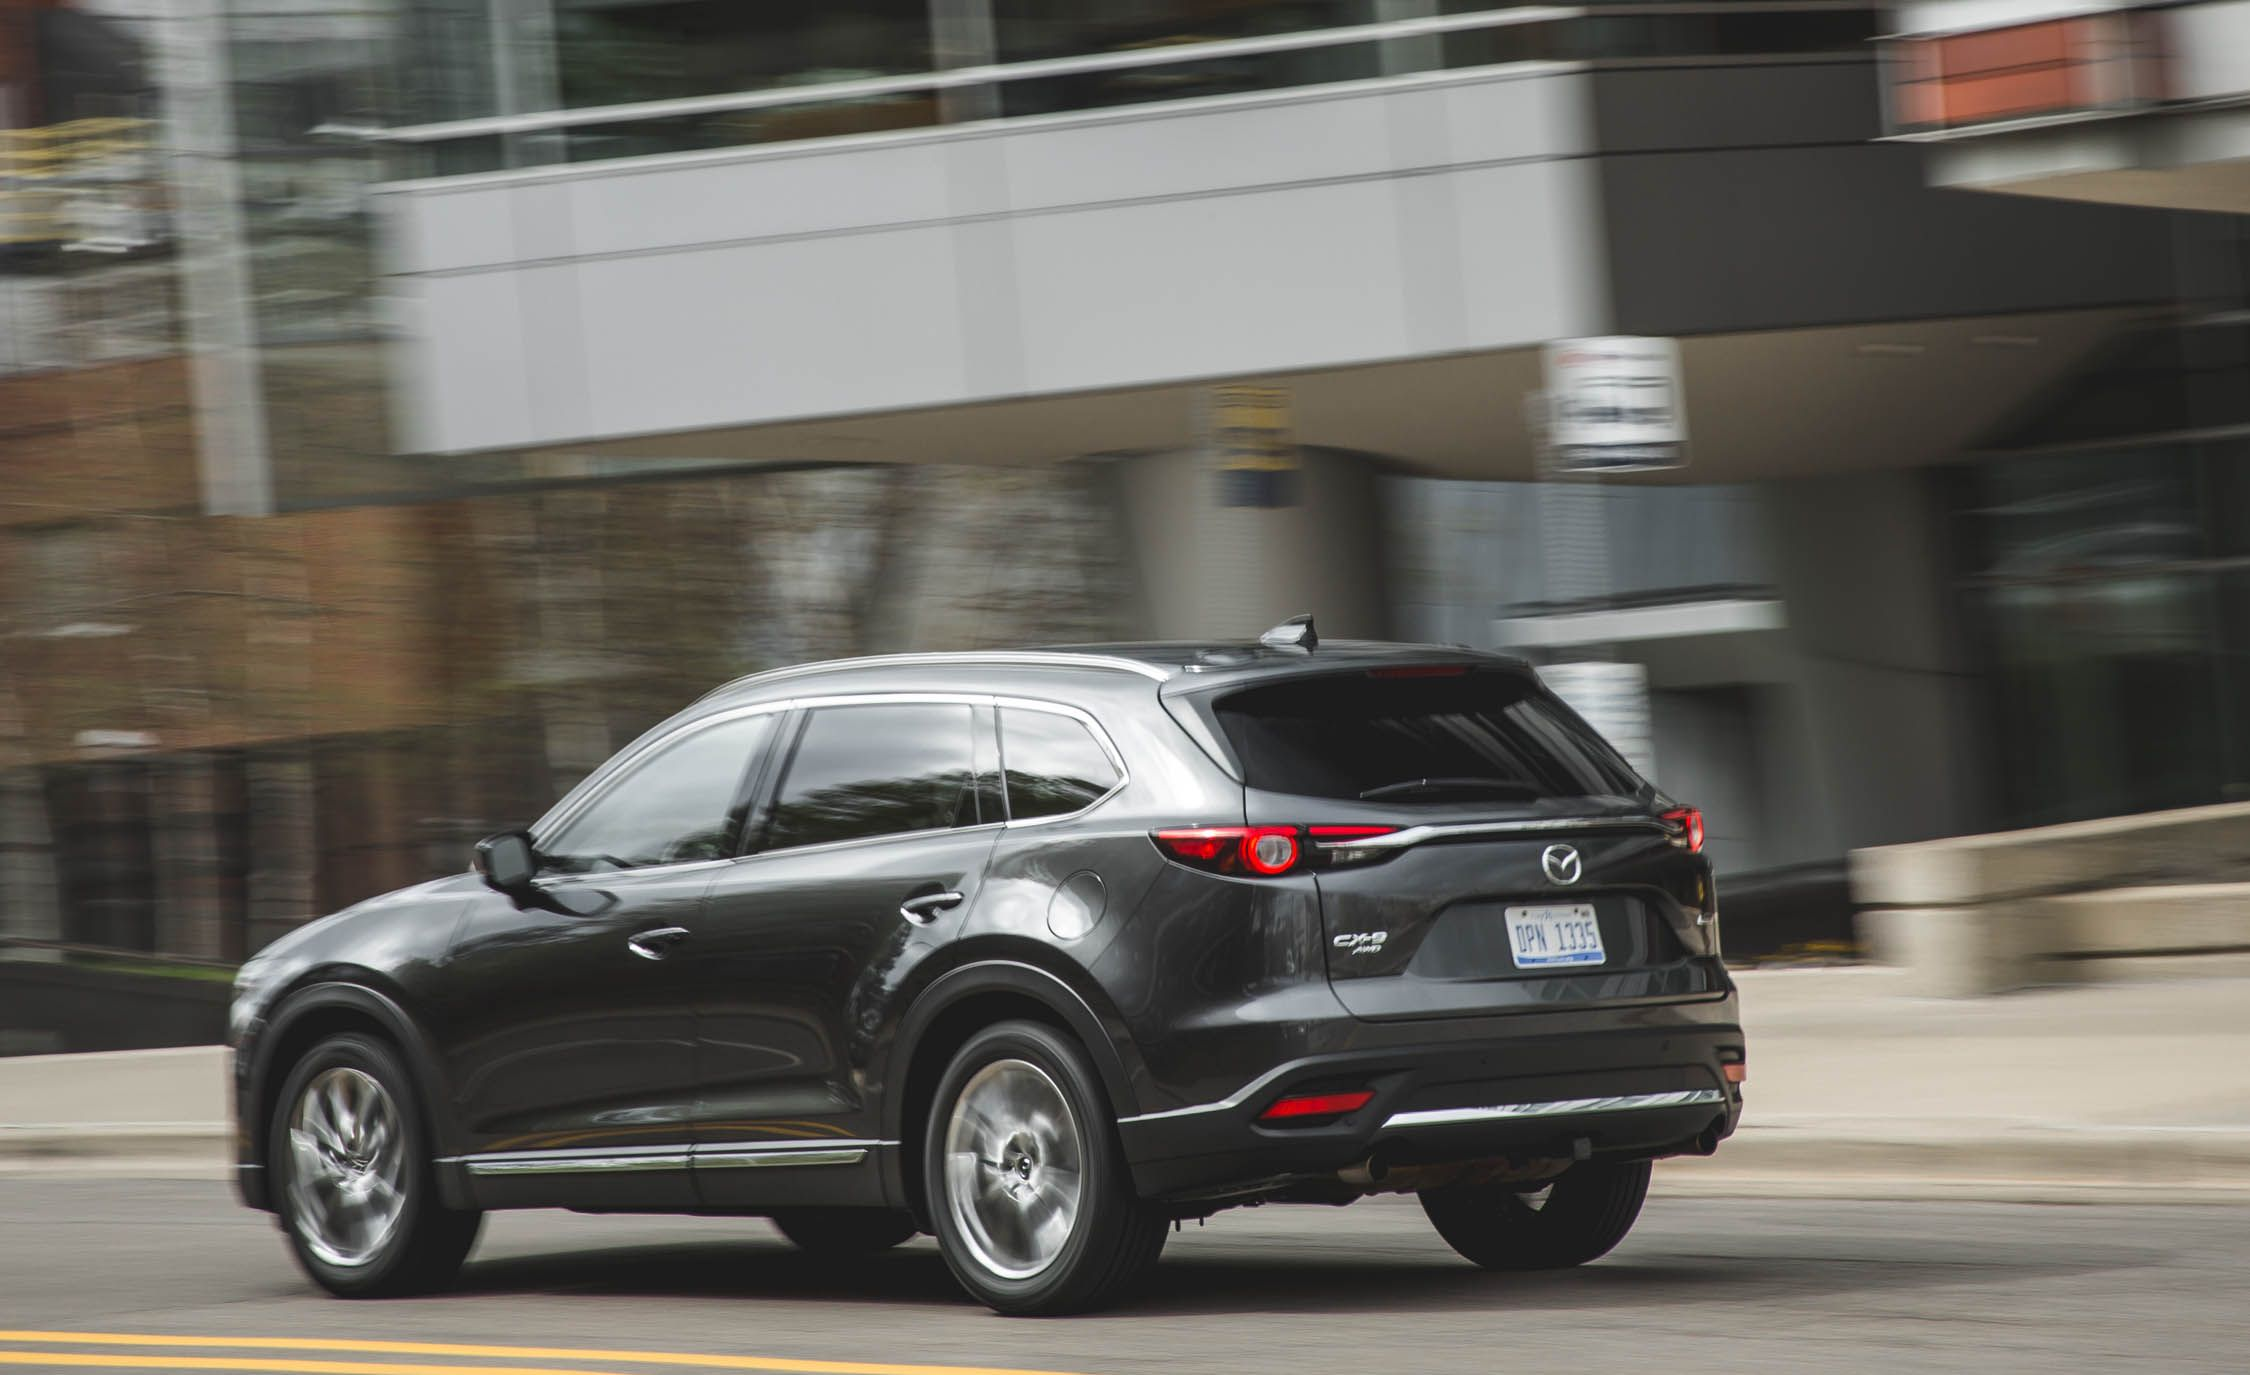 2018 mazda cx-9 quick-hit review: what you need to know